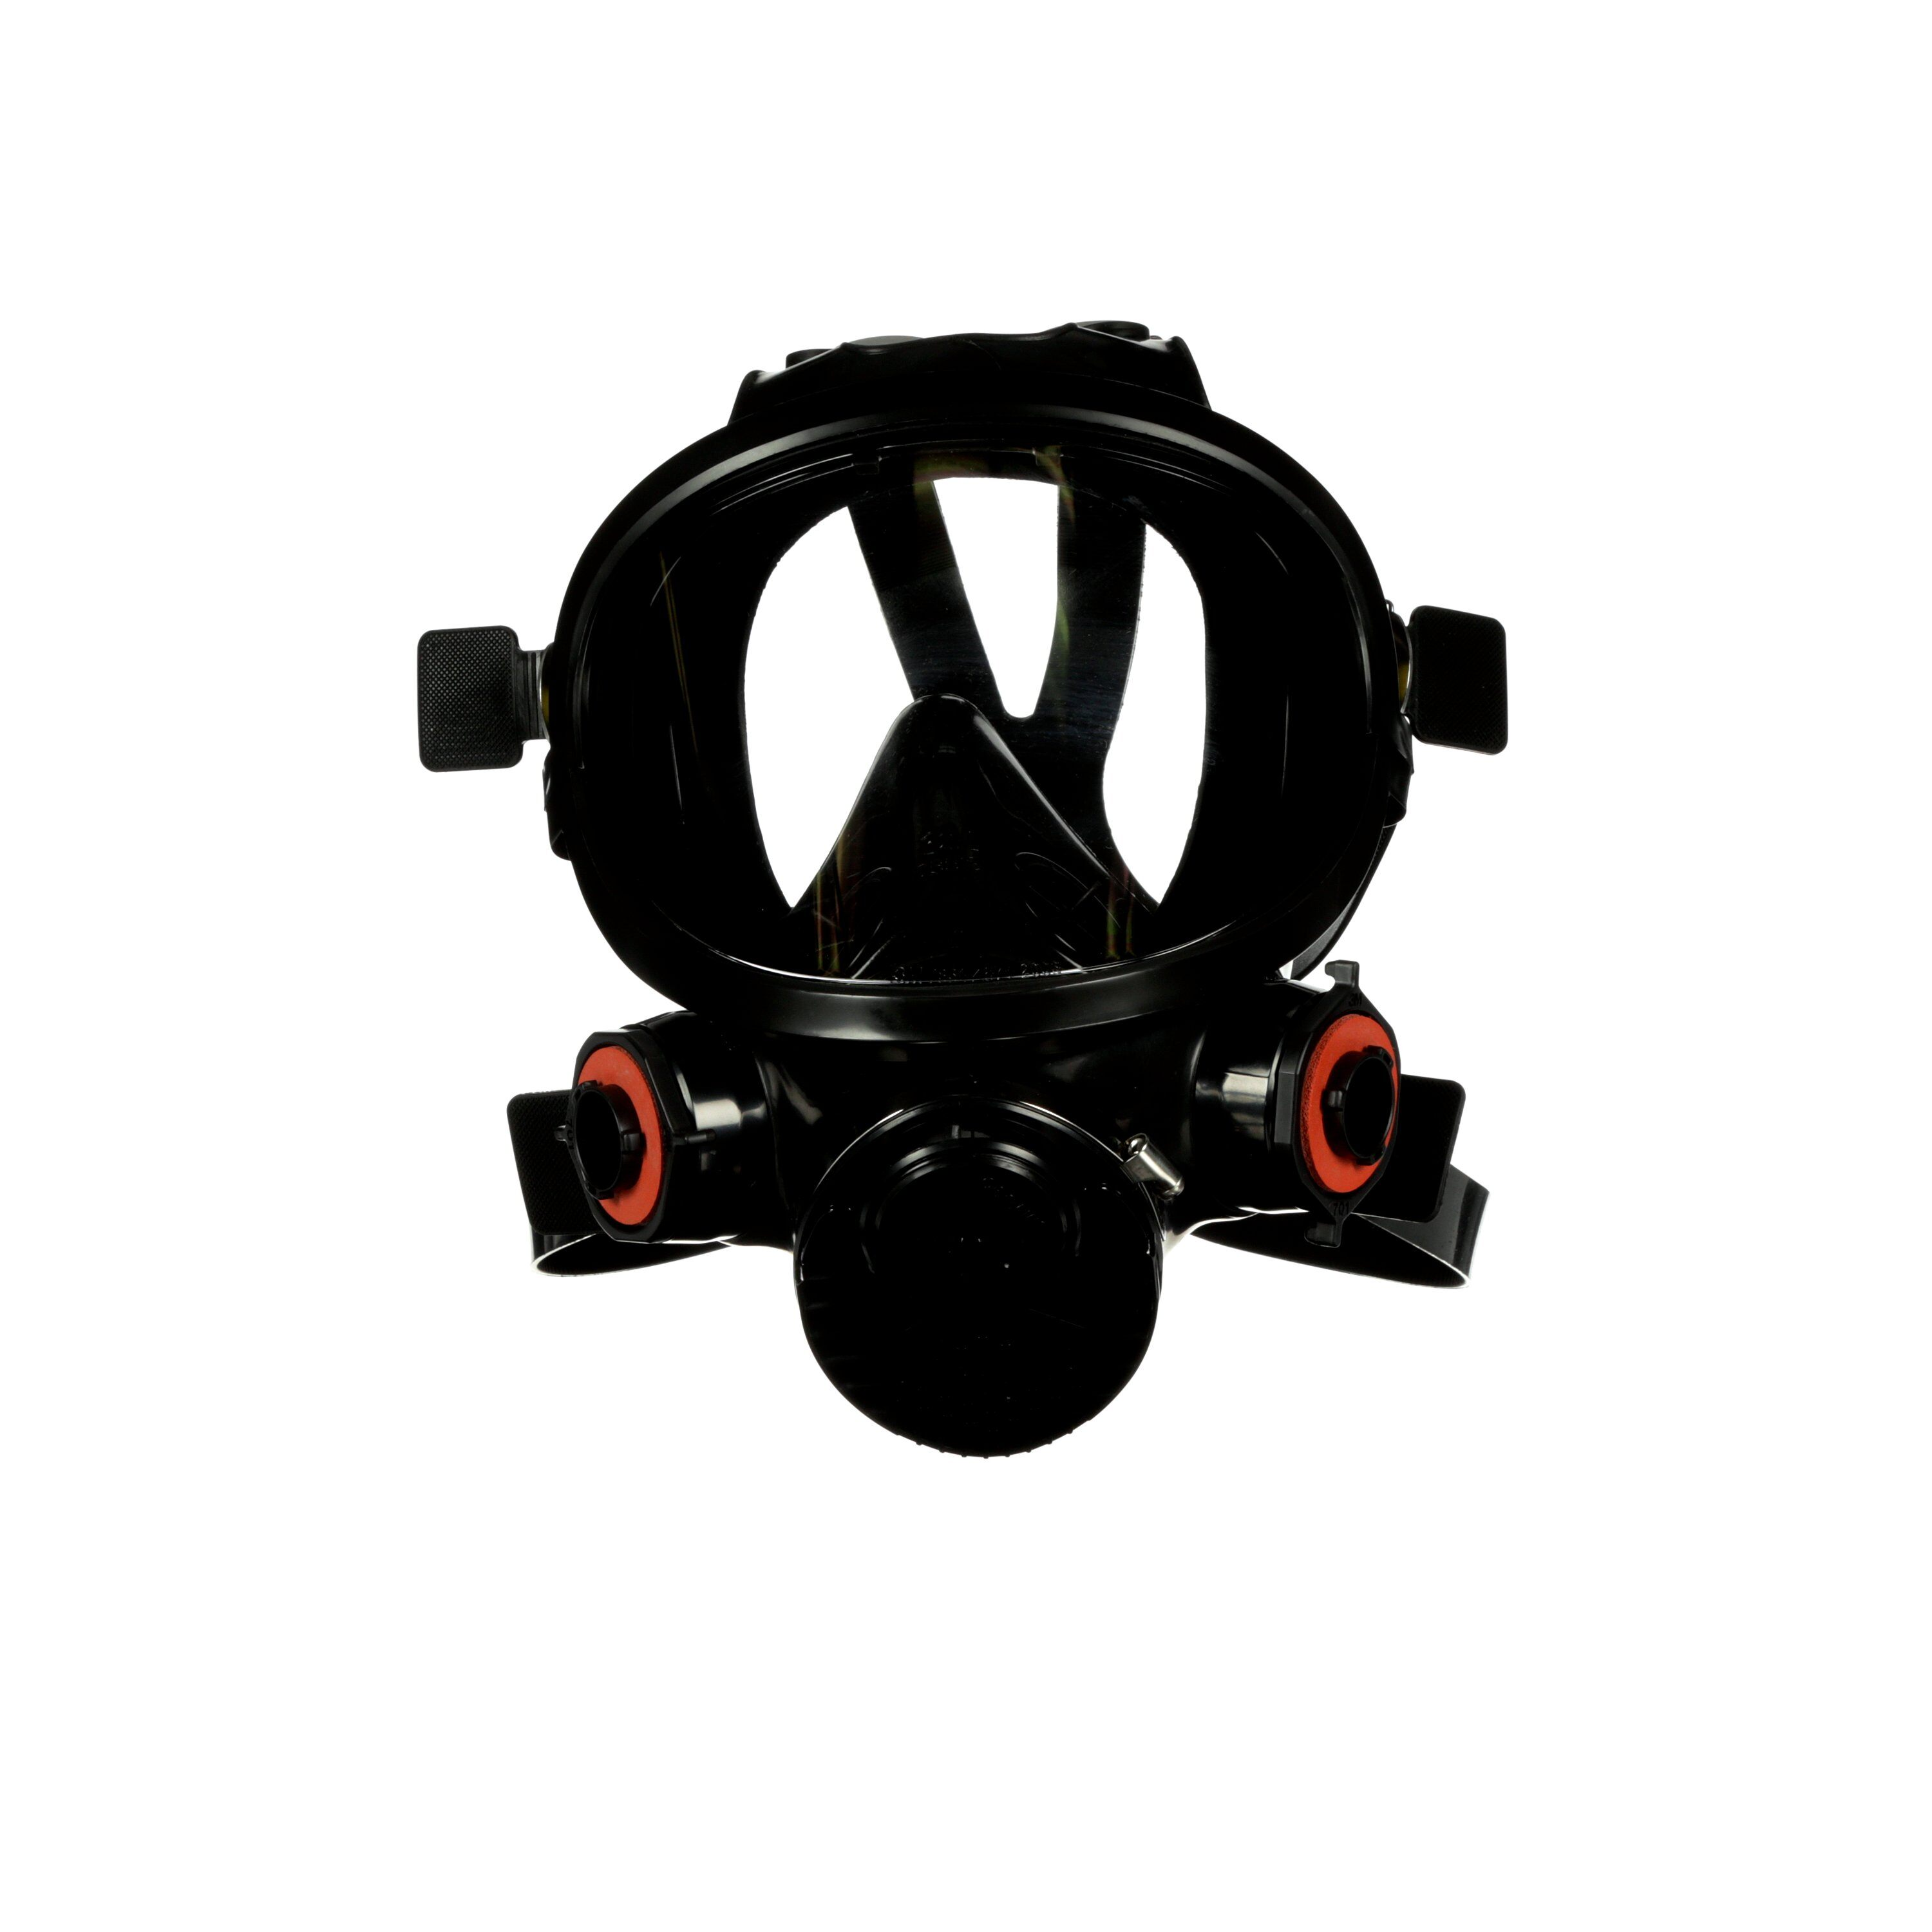 3M™ 7800S-M V Series 7800 Reusable Full Face Respirator, M, 6-Point Suspension, Bayonet/DIN Connection, Resists: Multi-Contaminants